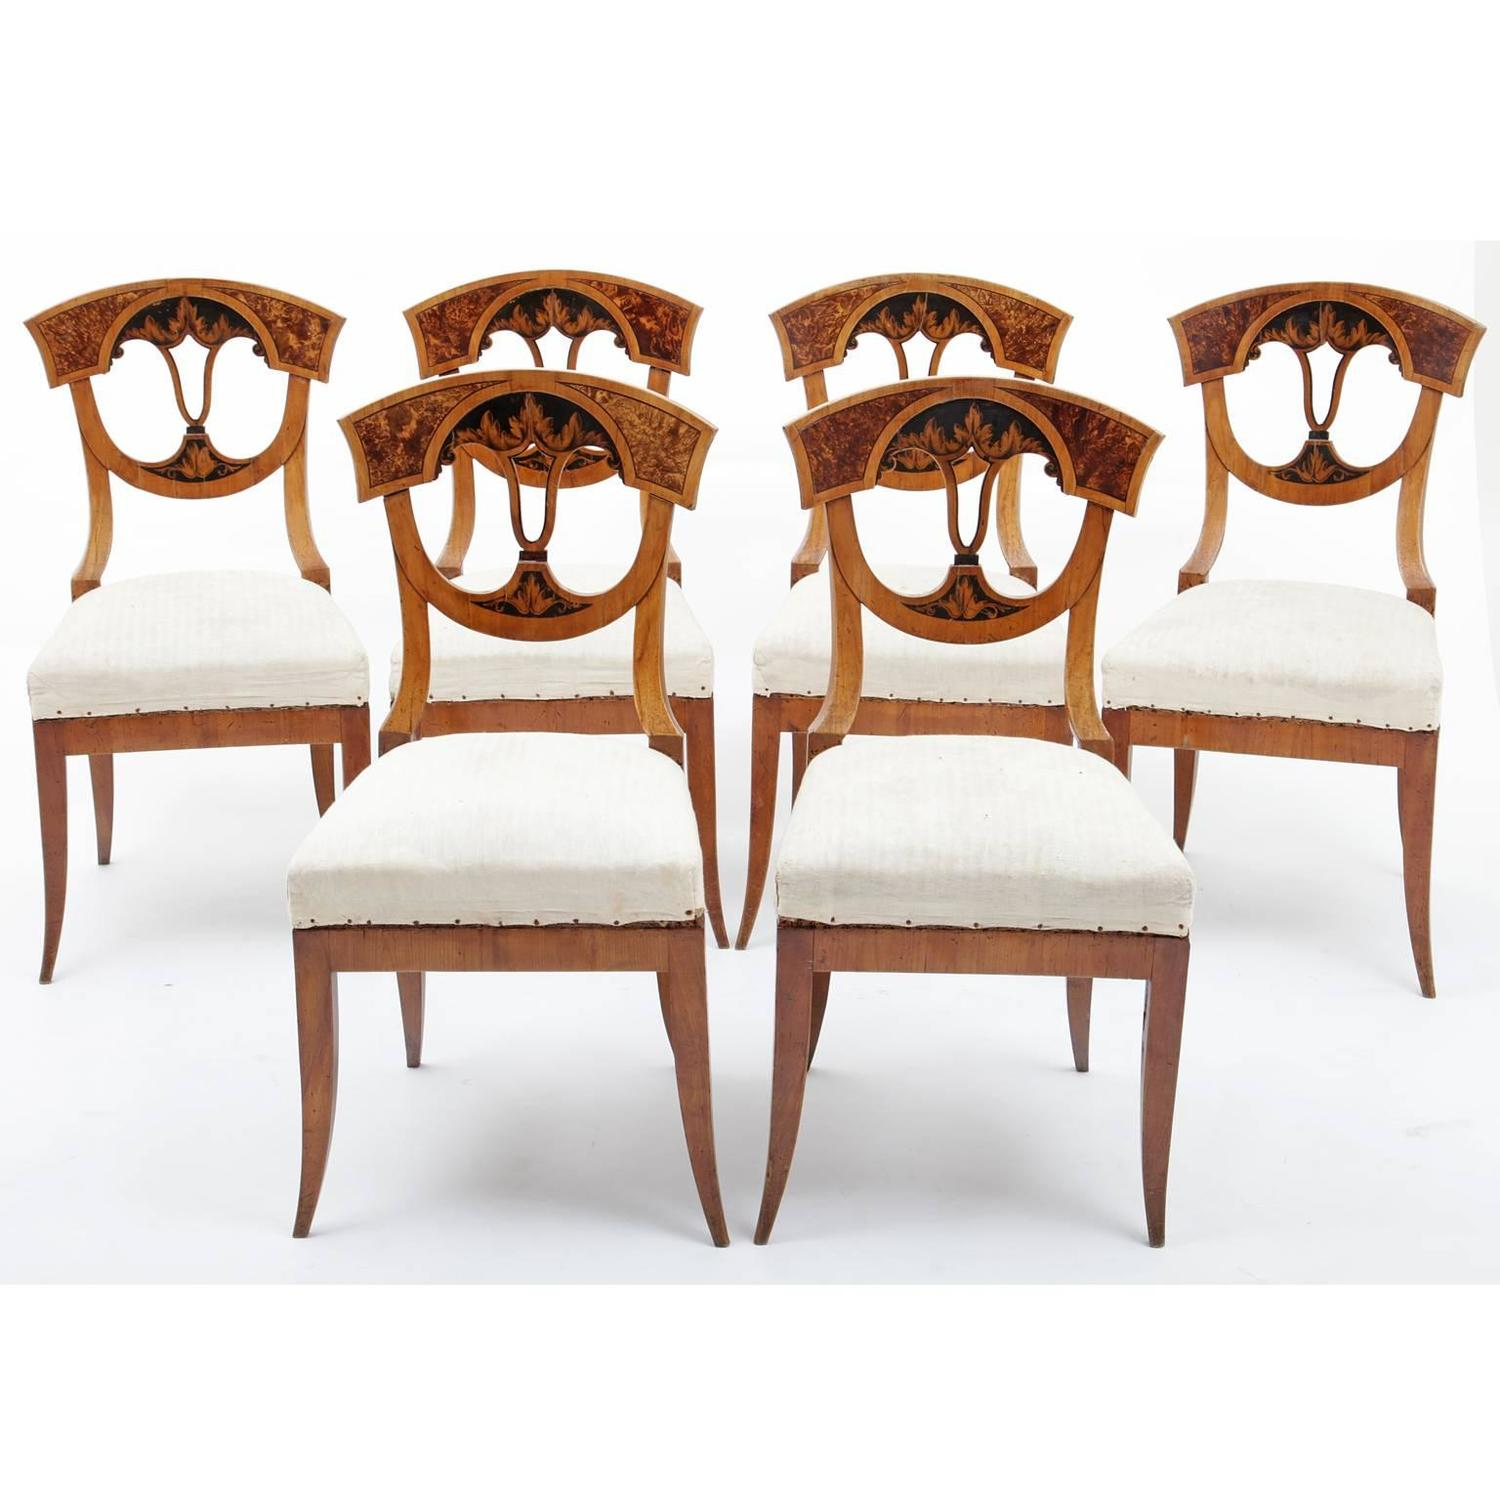 Neoclassical dining chairs german franconia 1820 for for Dining room in german